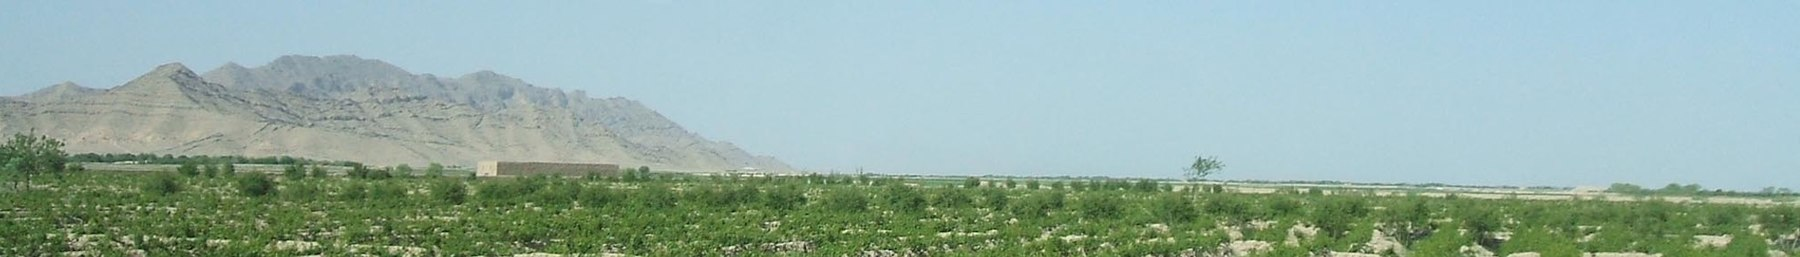 WV banner South Afghanistan Grape vineyards in Kandahar province.jpg